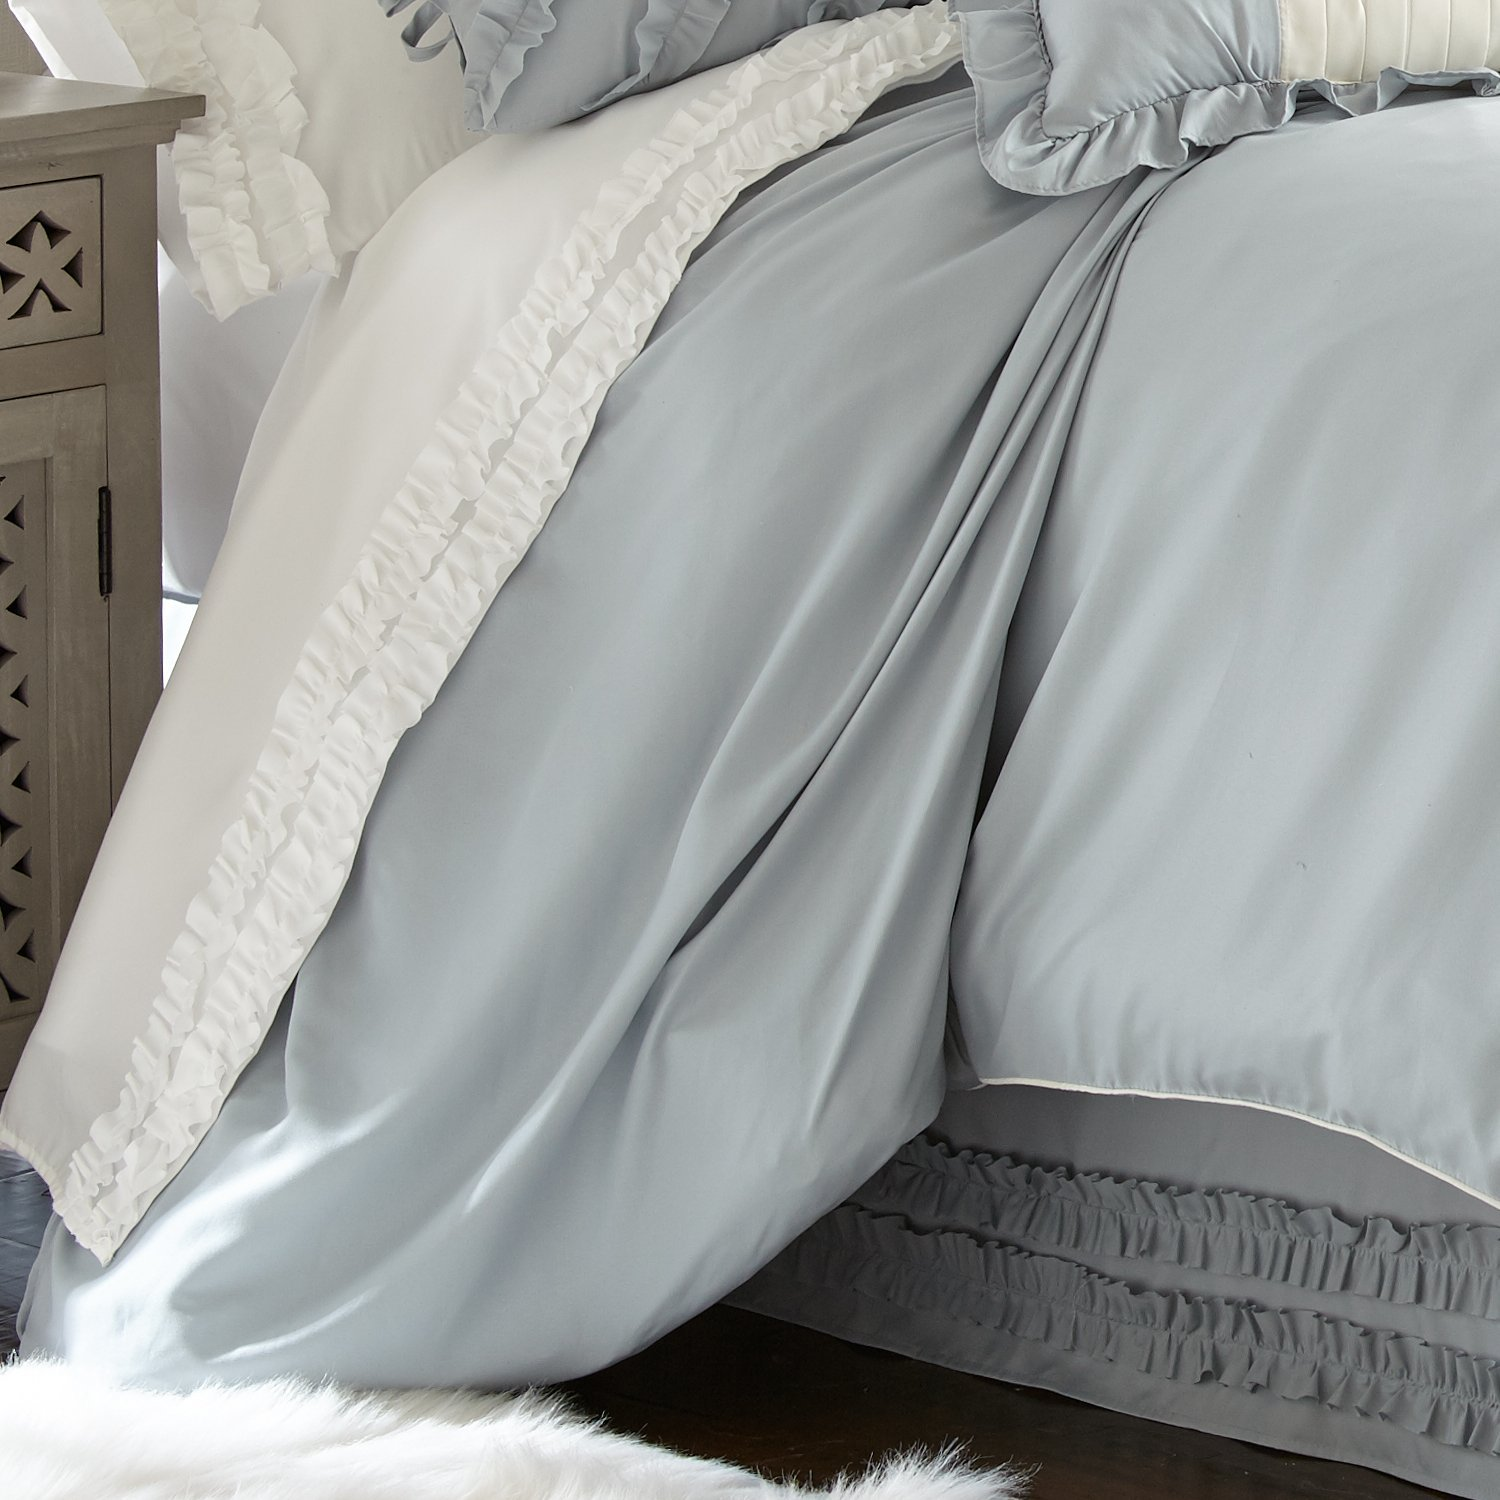 Feather Down Comforter | Pacific Coast Comforter | Best Alternative Down Comforter